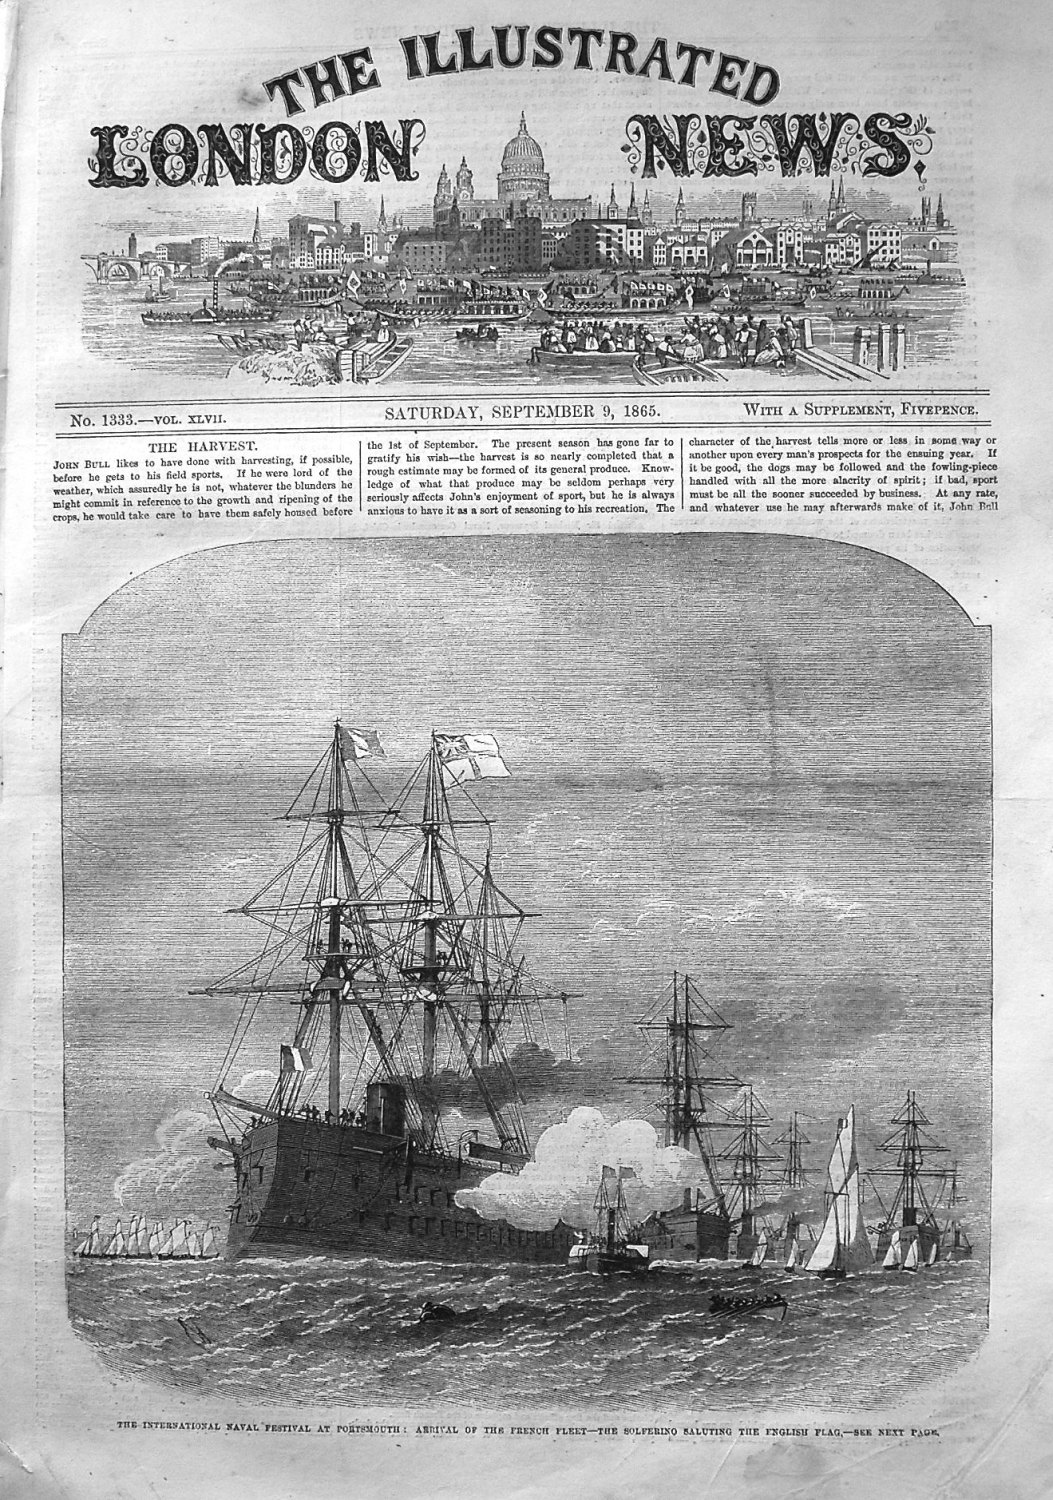 Illustrated London News September 9th 1865.